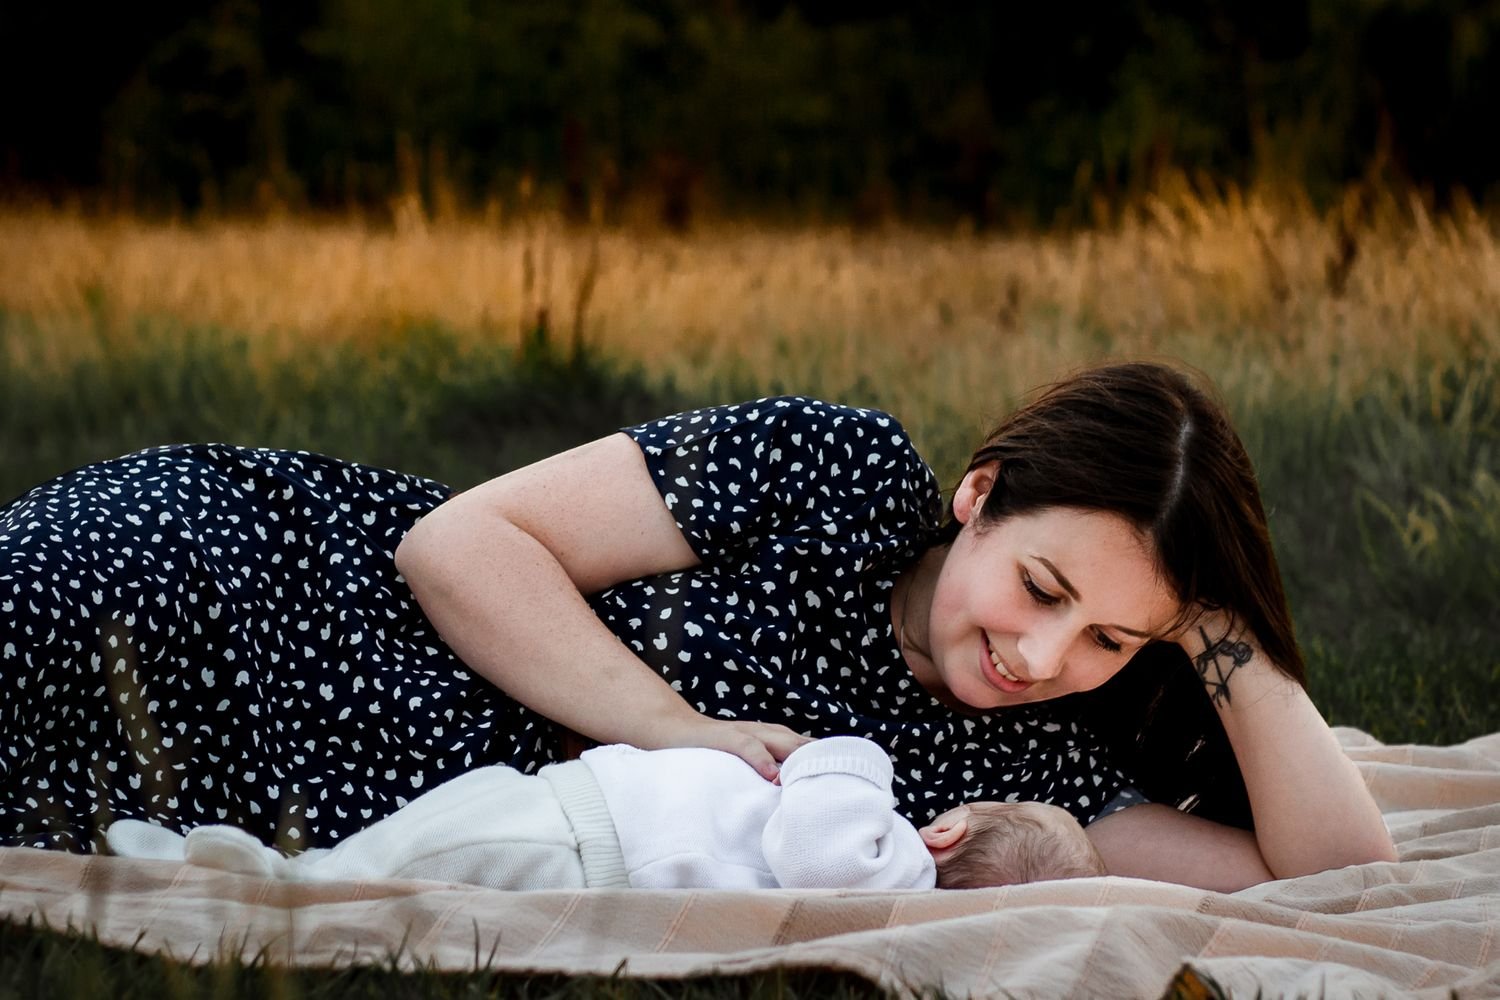 In a field in Havant a new Mum lays beside her newborn Son smiling.